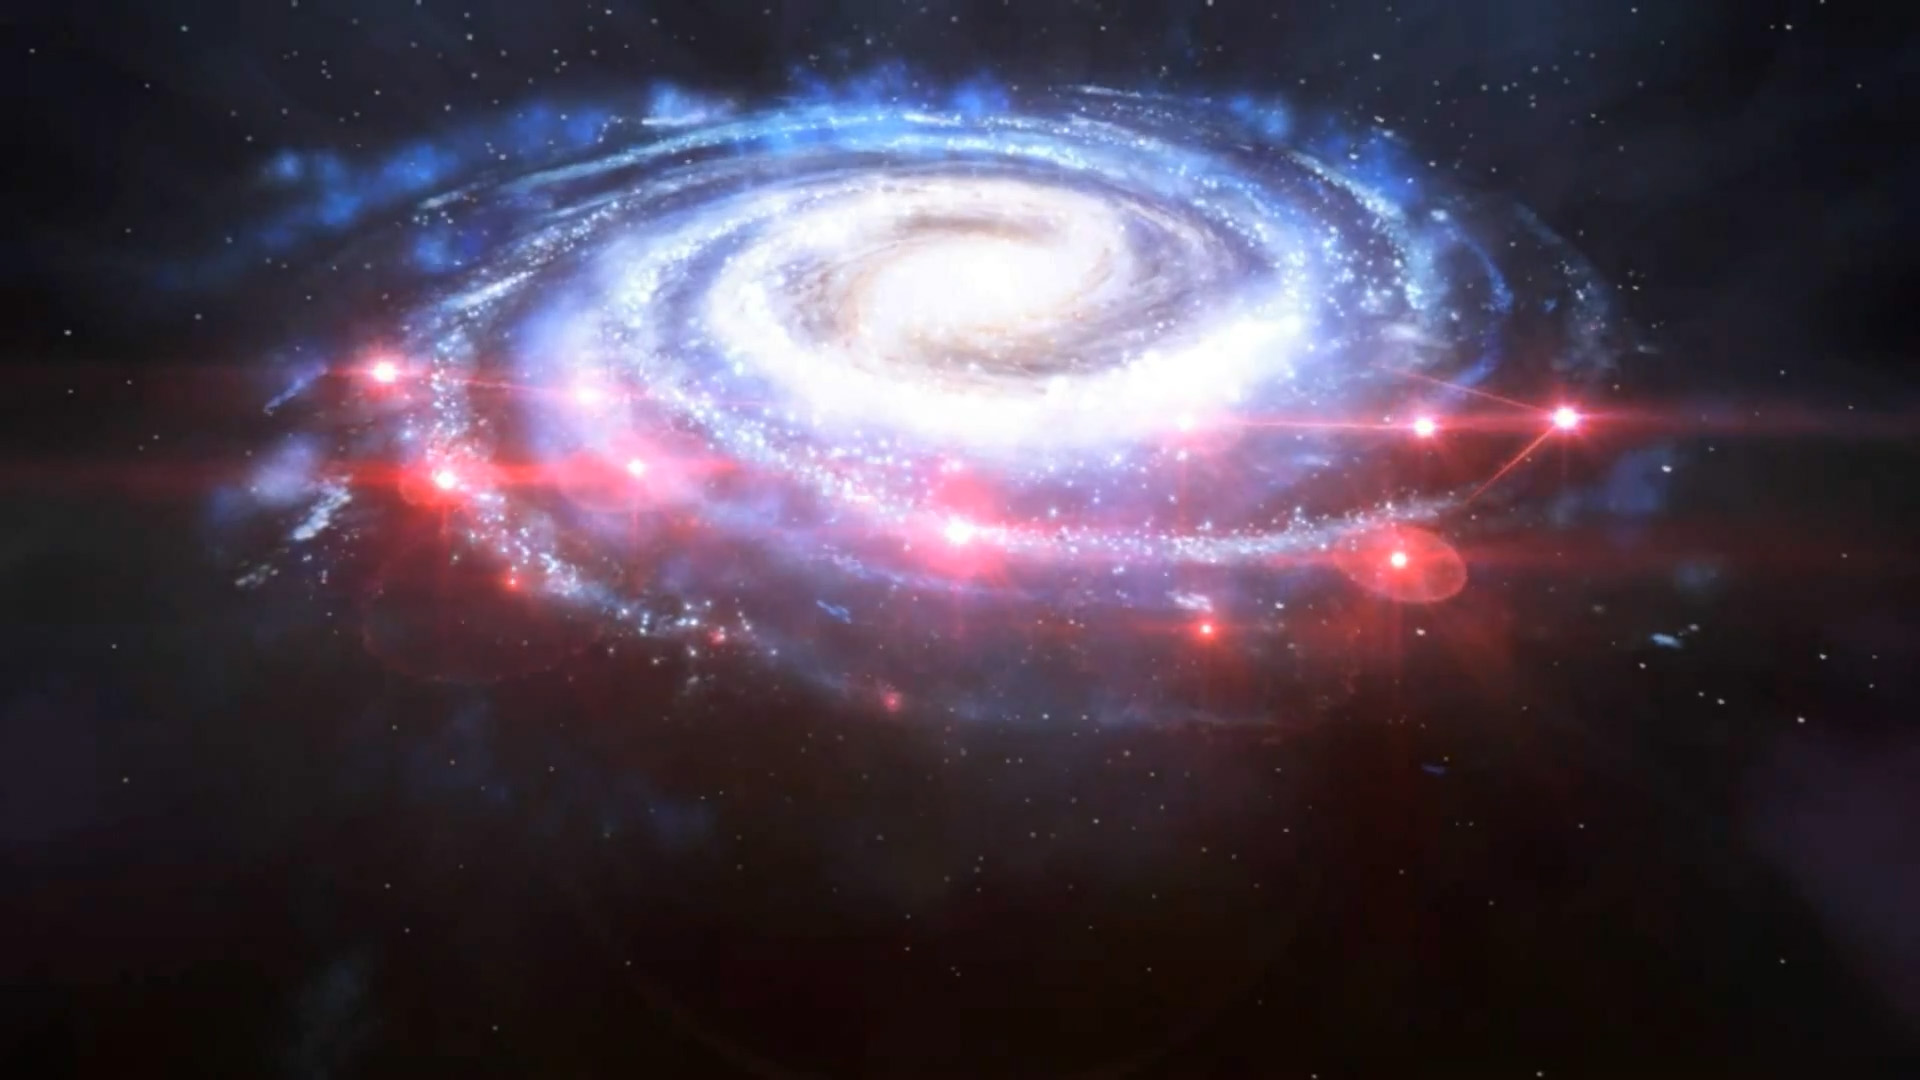 http://www.microcosmologist.com/blog/wp-content/uploads/2012/07/Mass-Effect-3-Galaxy-mass-relays-exploding.jpg